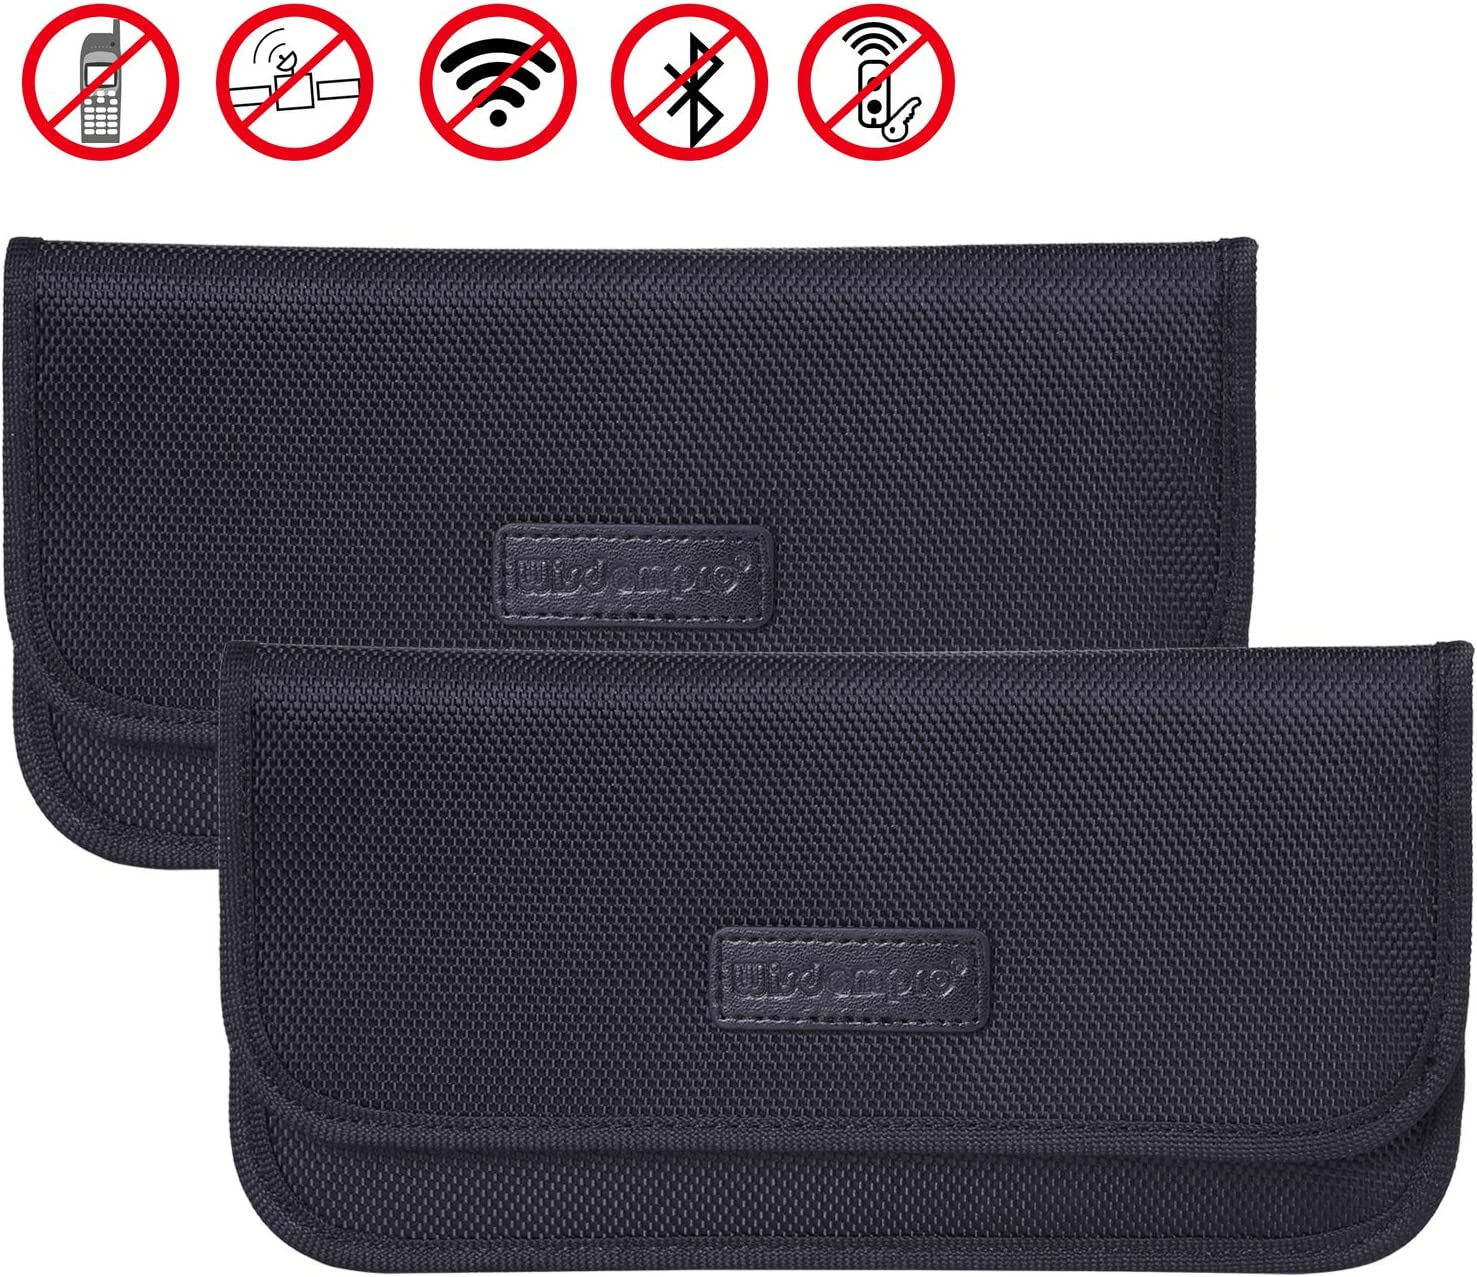 2 Pack Faraday Bag for Car Key Fob,Faraday Cage RFID Signal Blocking Bag Case Shielding Pouch,RFID//WiFi//GSM//LTE//NFC Protector,Carbon Fiber Texture,Black